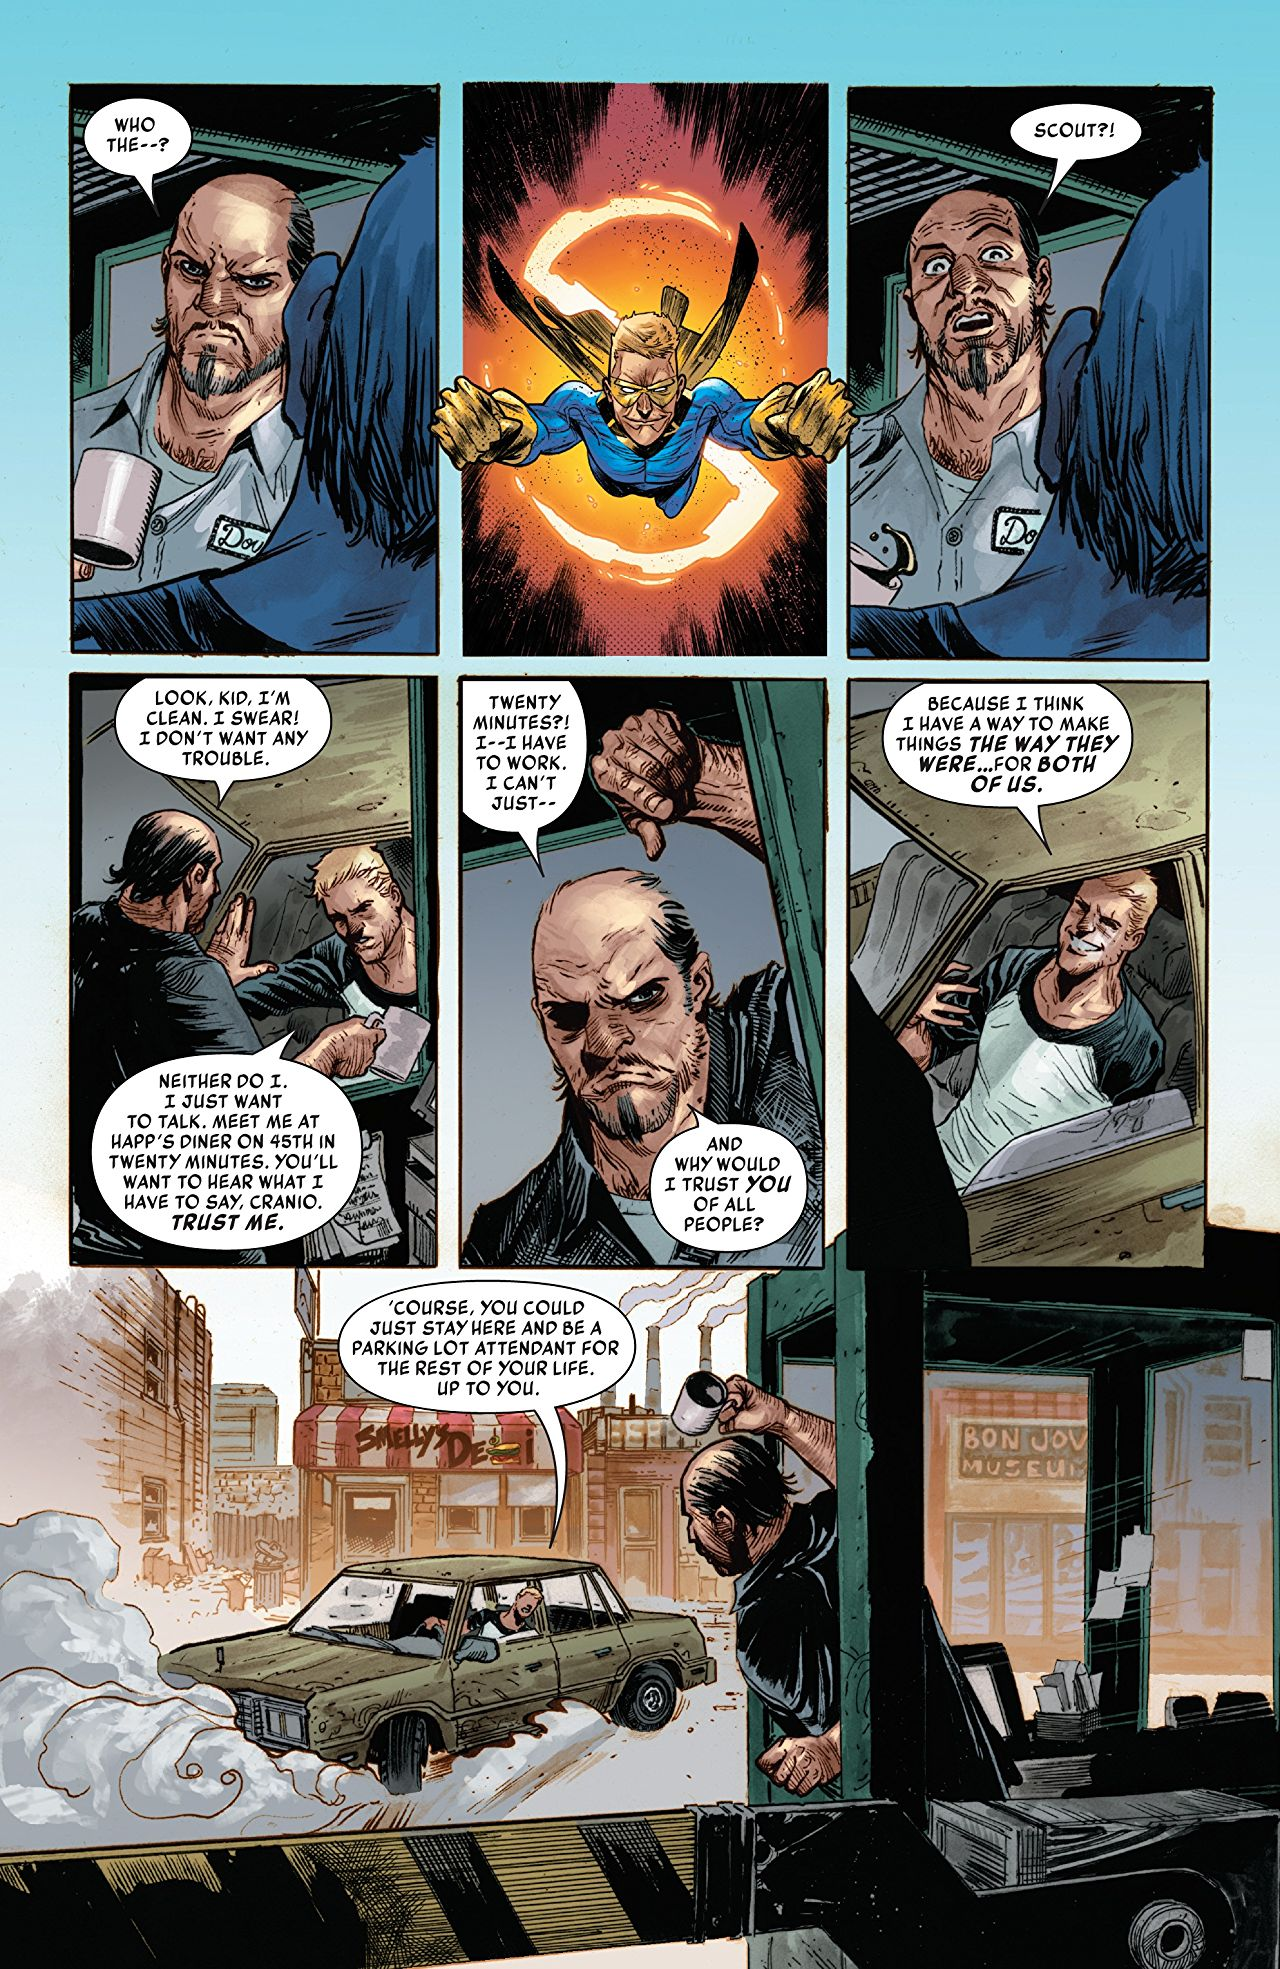 The Sentry #3 art by Joshua Cassara, Kim Jacinto, and Rain Beredo